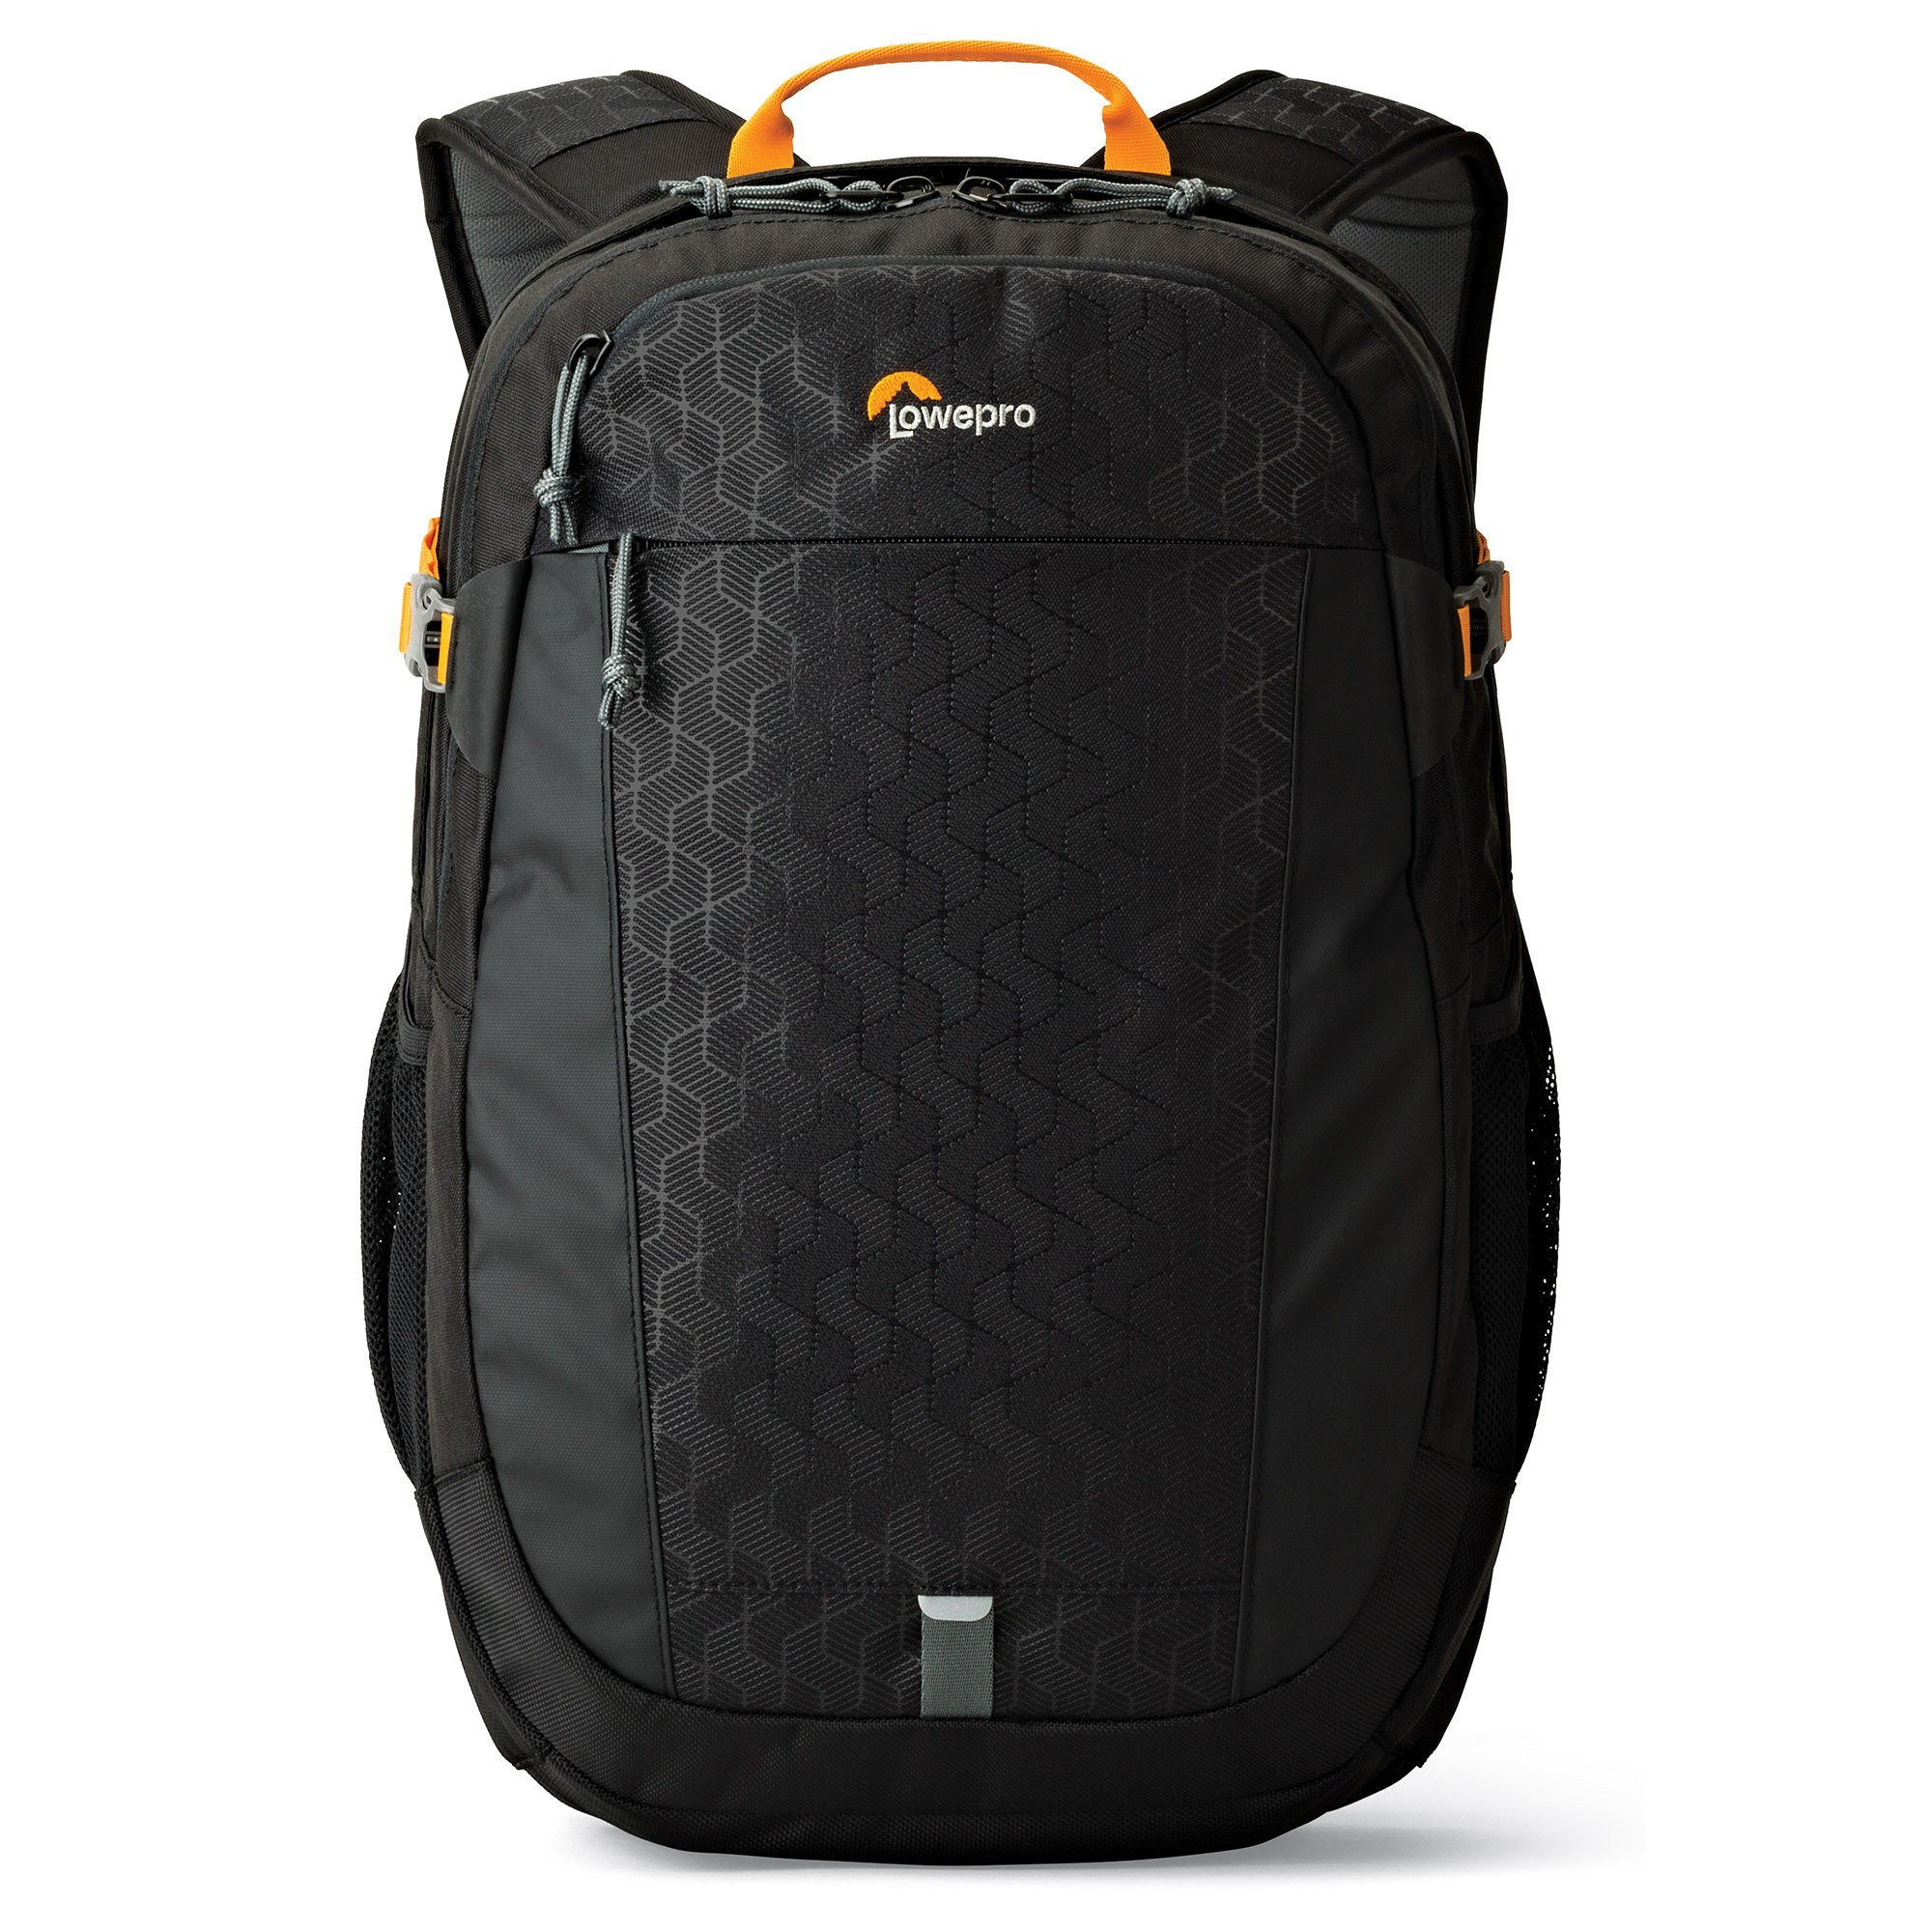 Lowepro RidgeLine BP 250 AW - A 24L Daypack with Dedicated Device Storage for a 15'' Laptop and 10'' Tablet by Lowepro